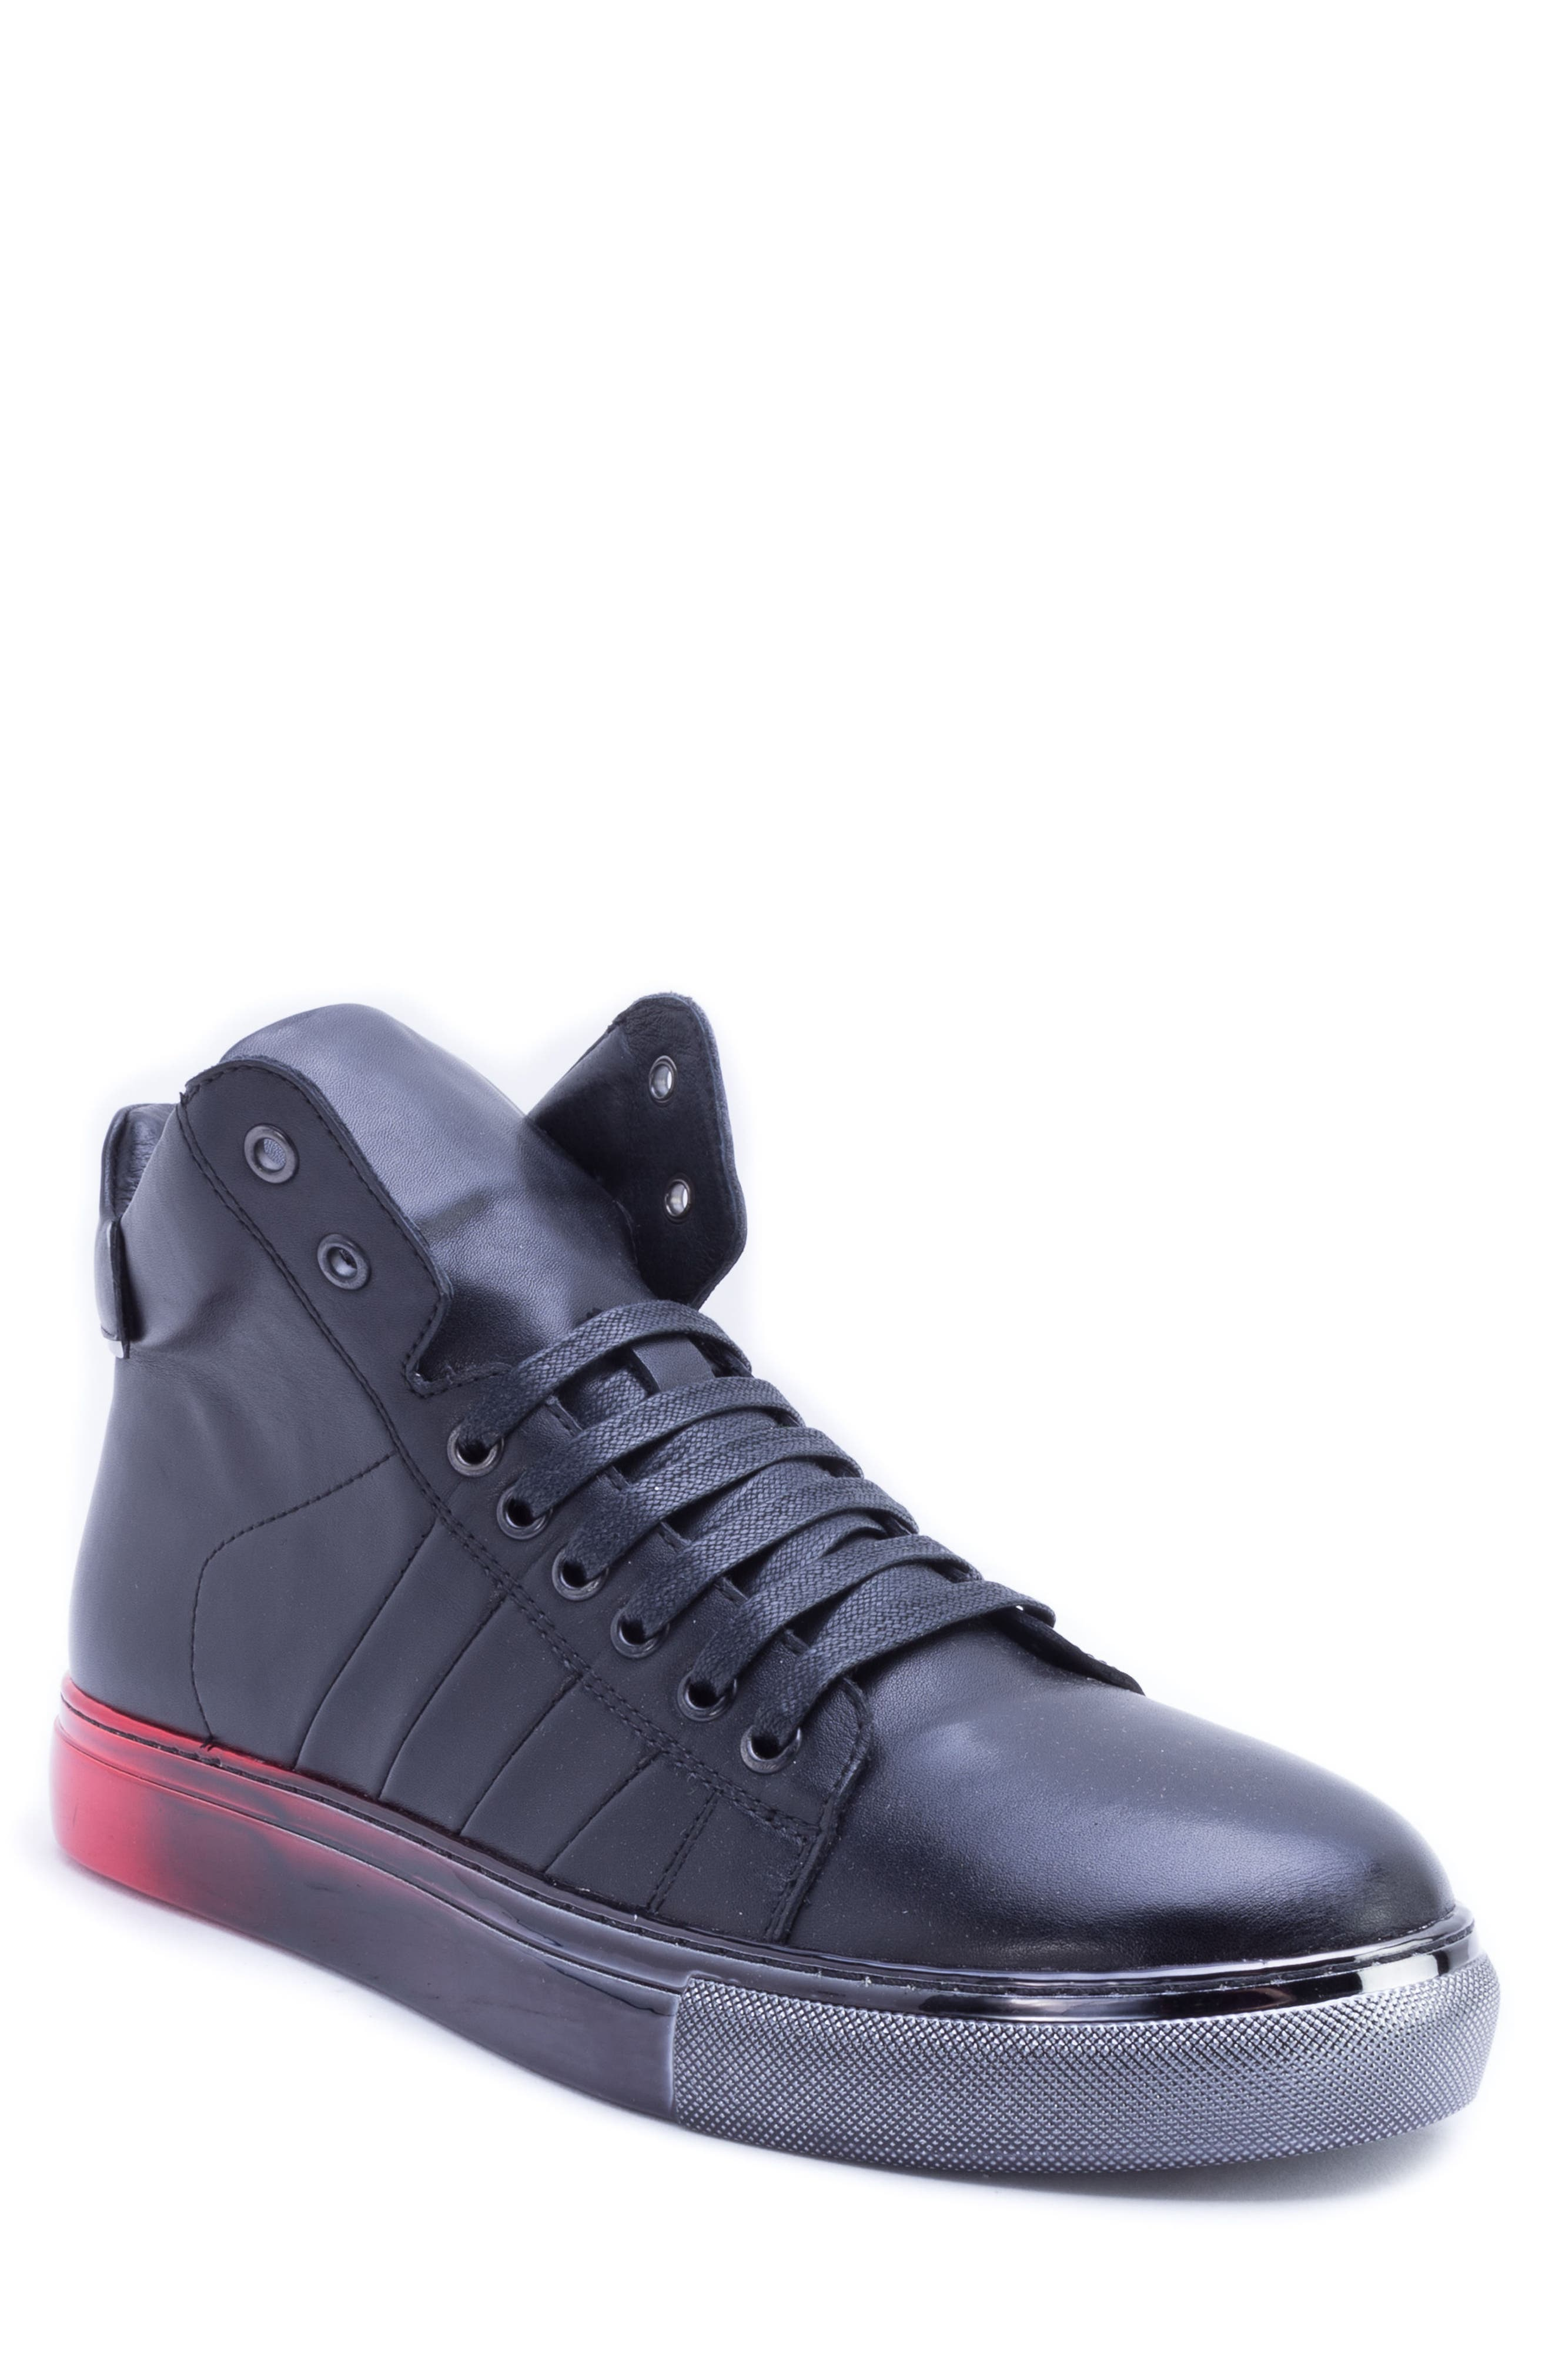 BADGLEY MISCHKA COLLECTION,                             Badgley Mischka Bronson Sneaker,                             Main thumbnail 1, color,                             BLACK LEATHER